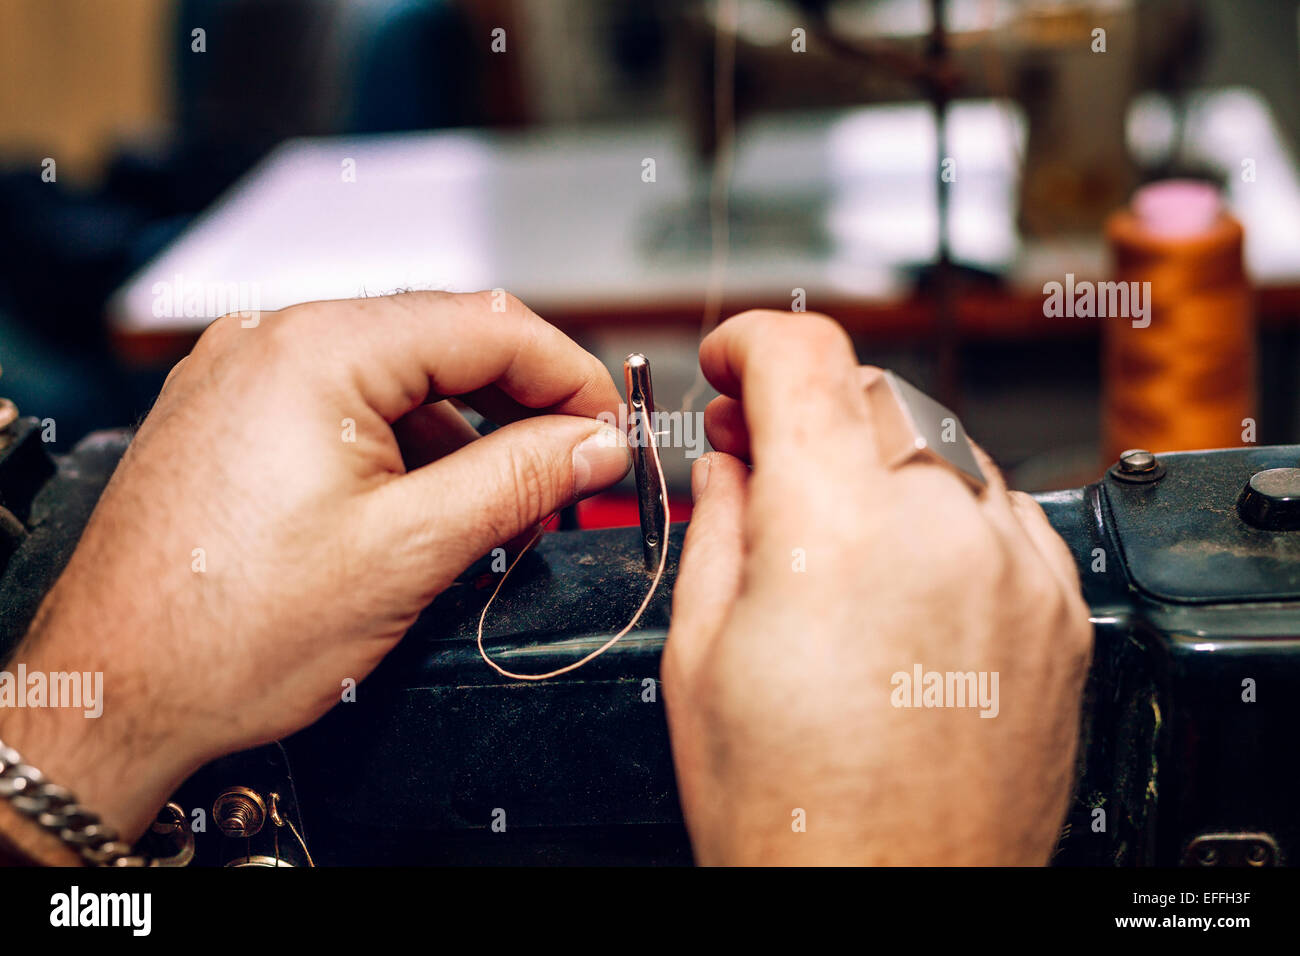 Cropped image of worker's hands inserting thread before manufacturing in factory - Stock Image